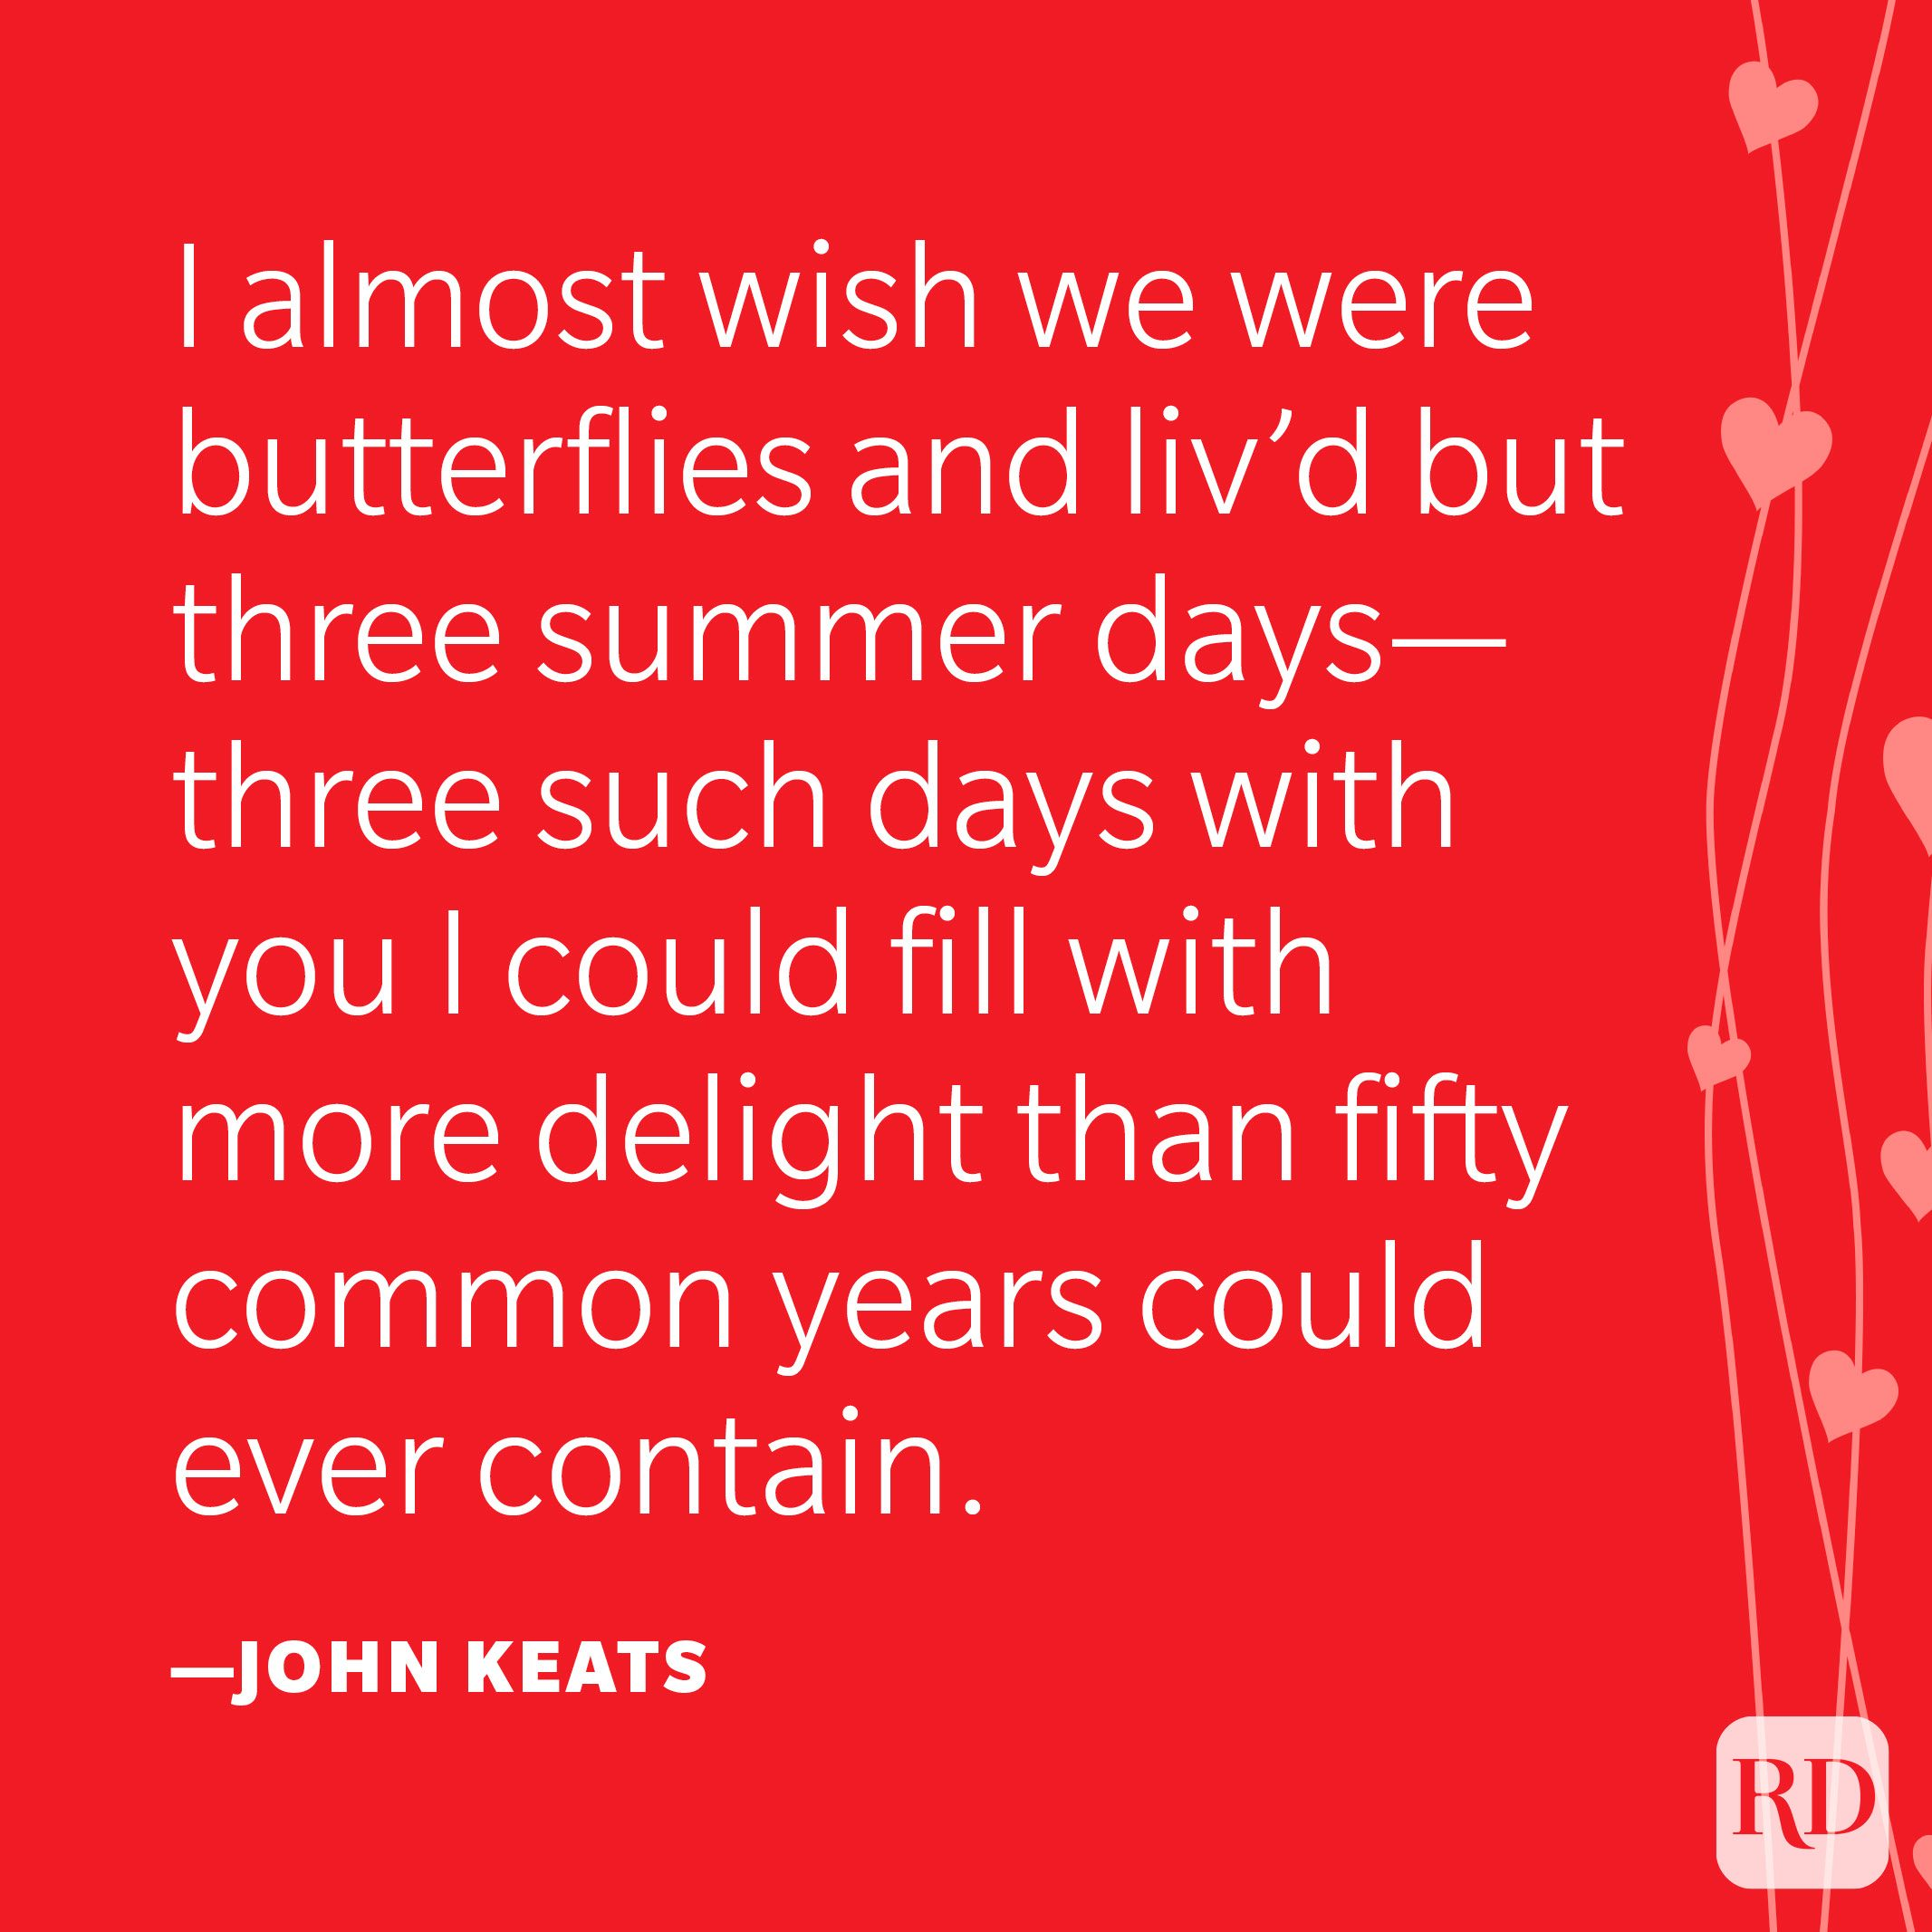 """""""I almost wish we were butterflies and liv'd but three summer days—three such days with you I could fill with more delight than fifty common years could ever contain."""" —John Keats"""